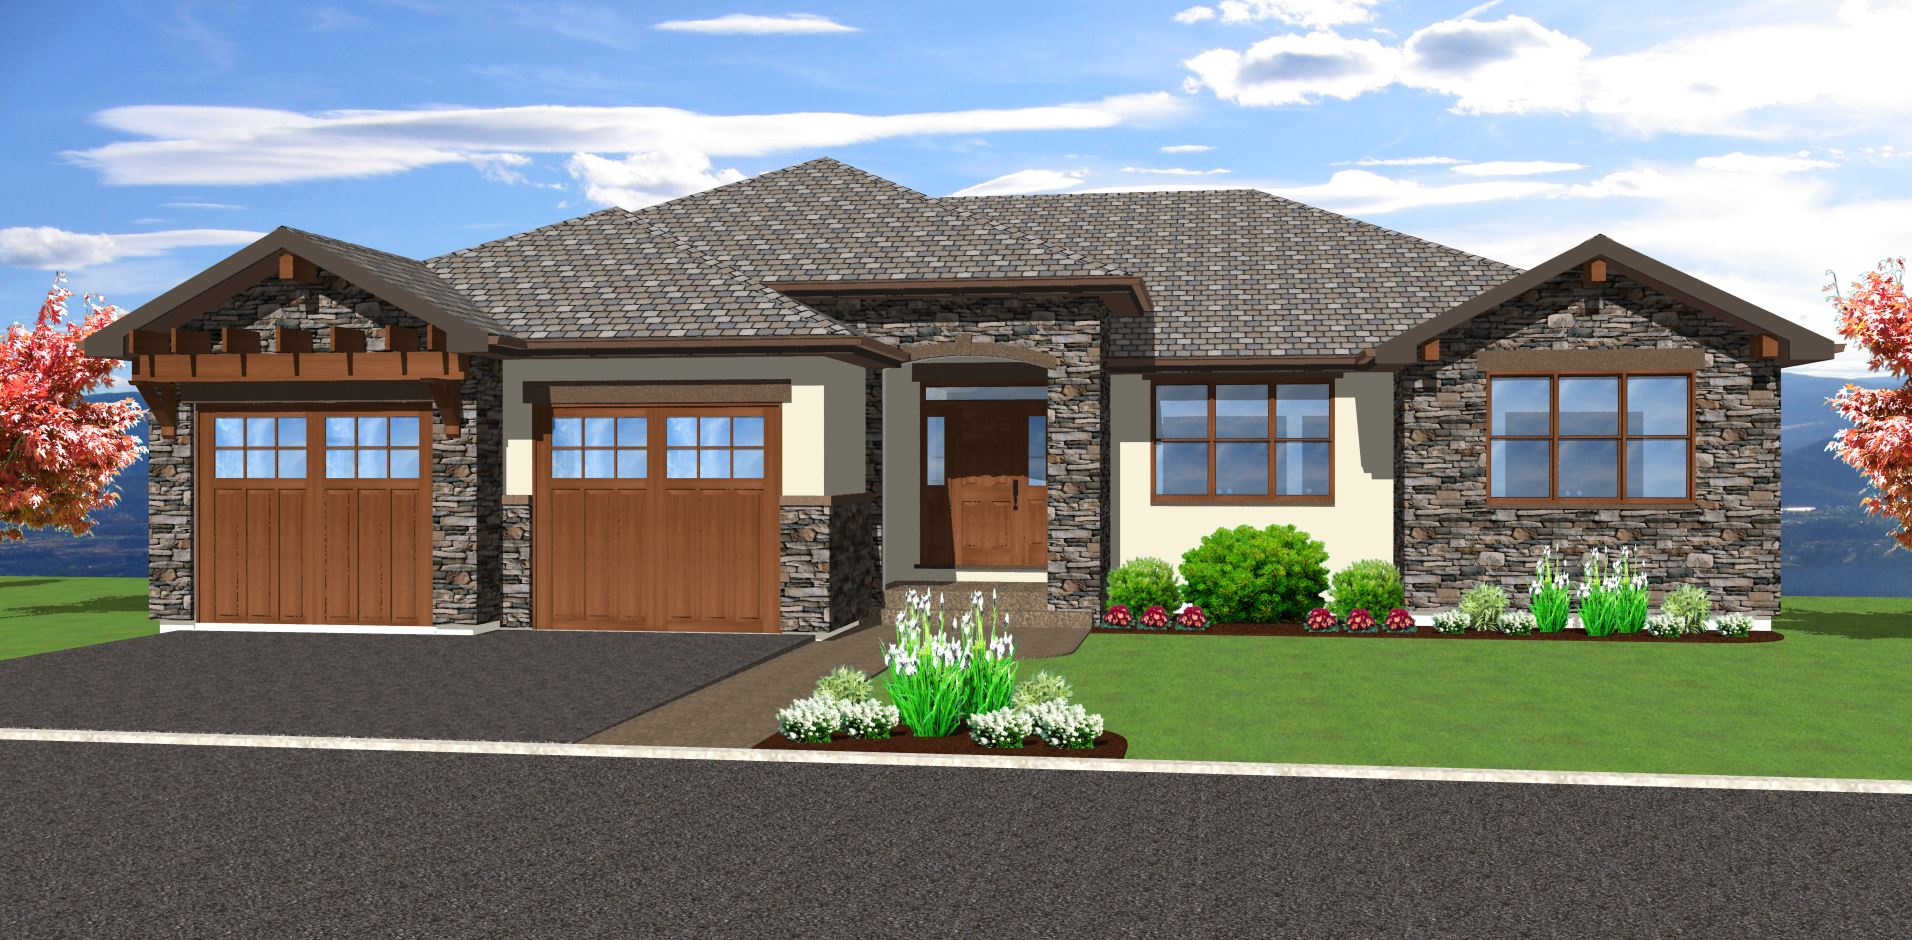 Spacious hillside home with walkout basement 67702mg Ranch house plans with basement 3 car garage